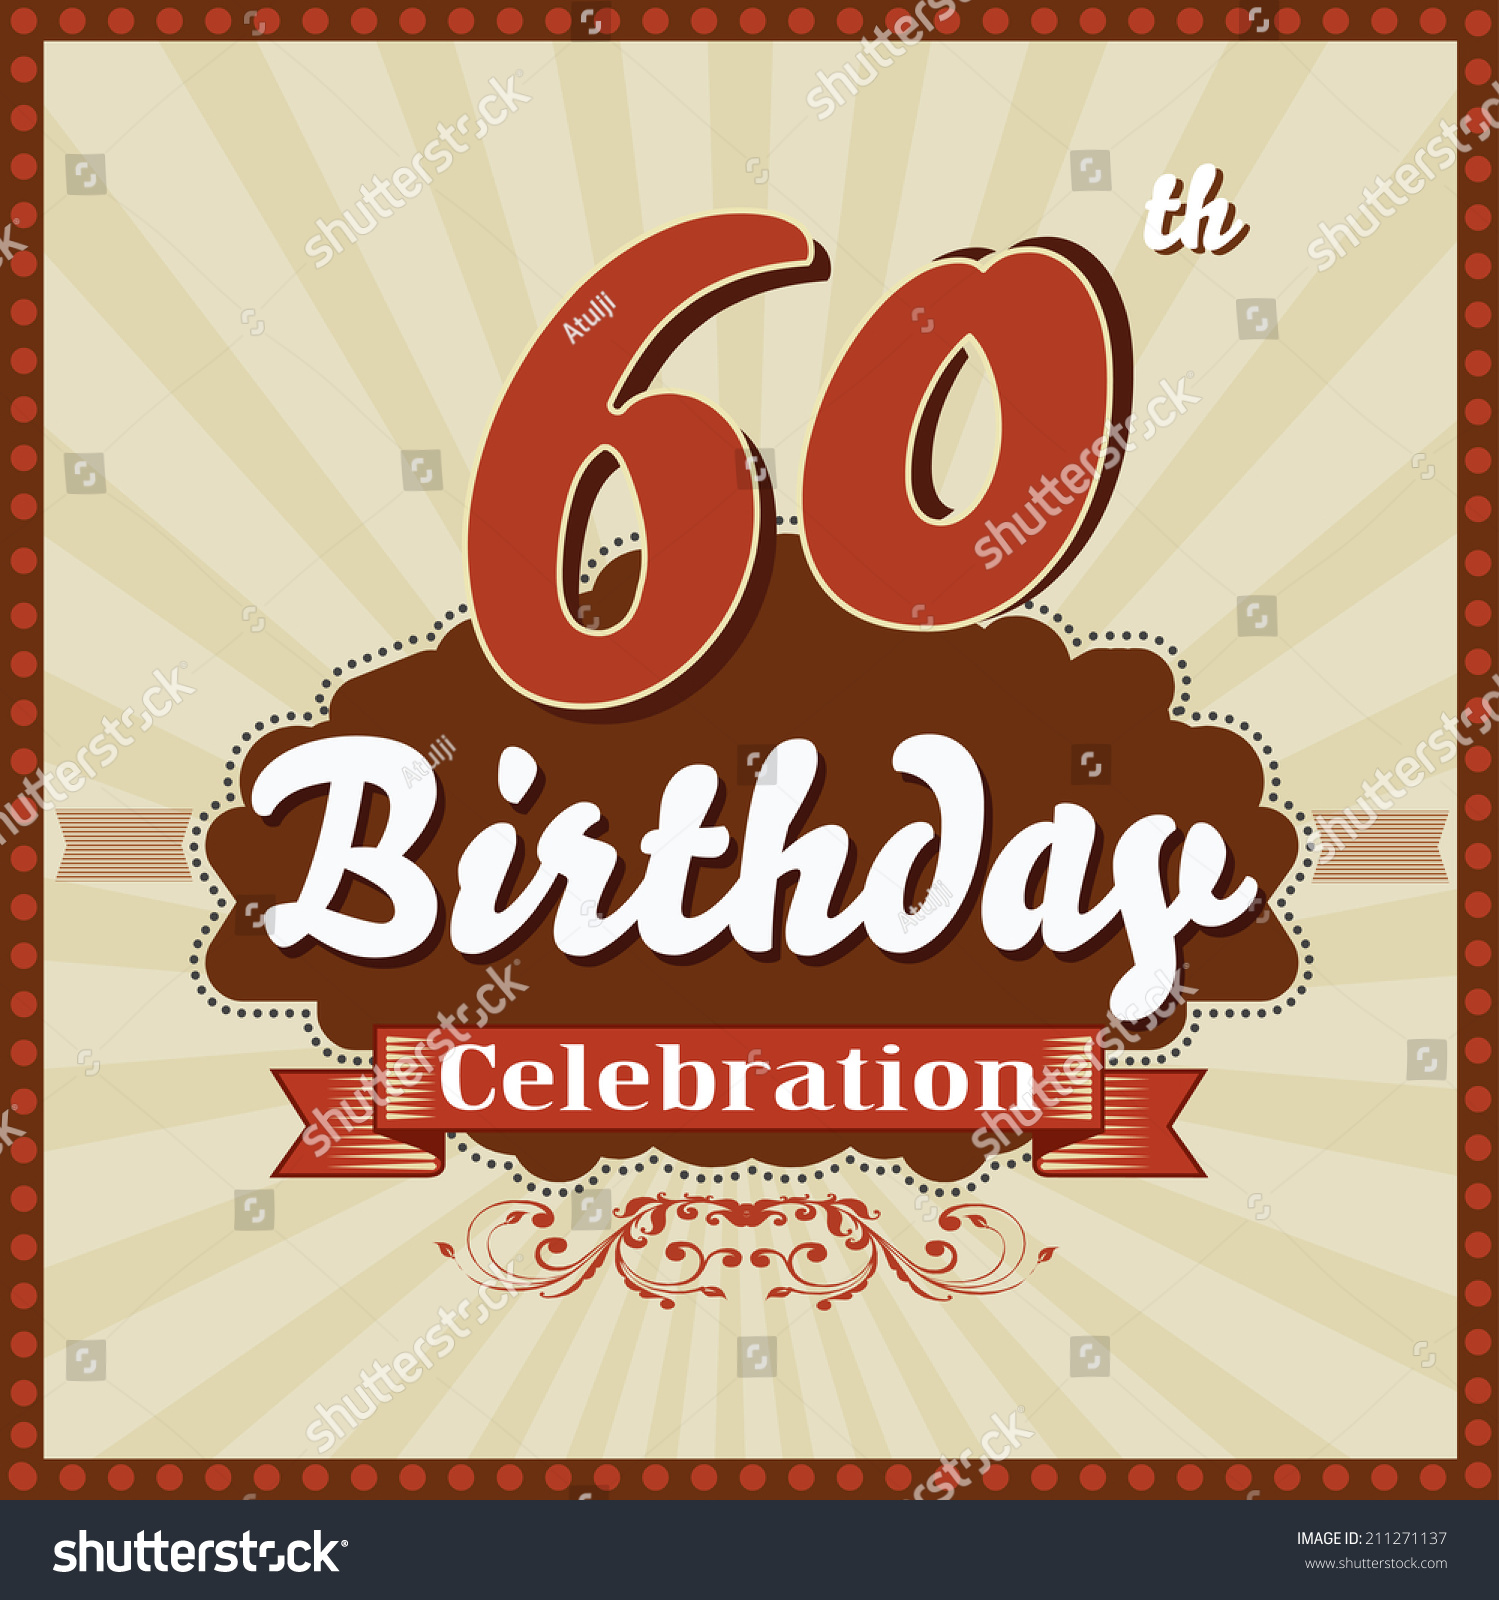 60 Years Celebration 60th Happy Birthday Stock Vector (Royalty Free ...